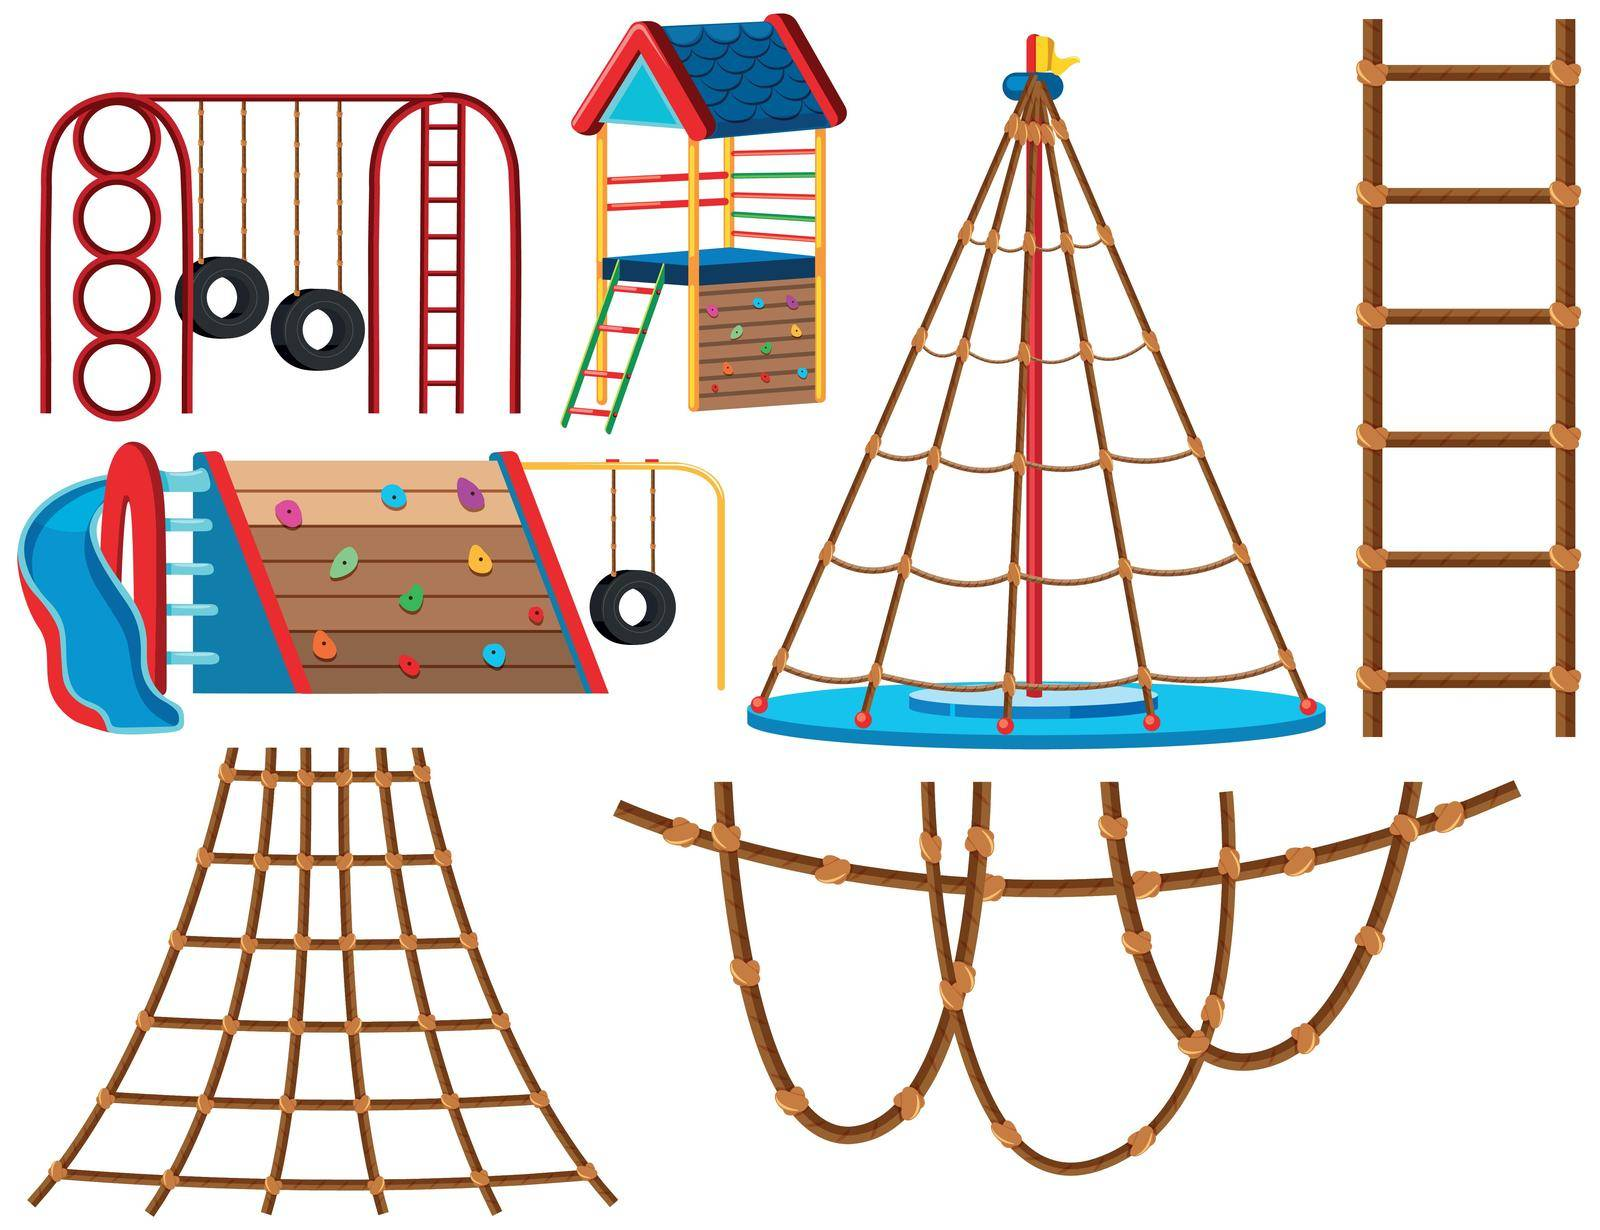 Set of playground equipment by iimages